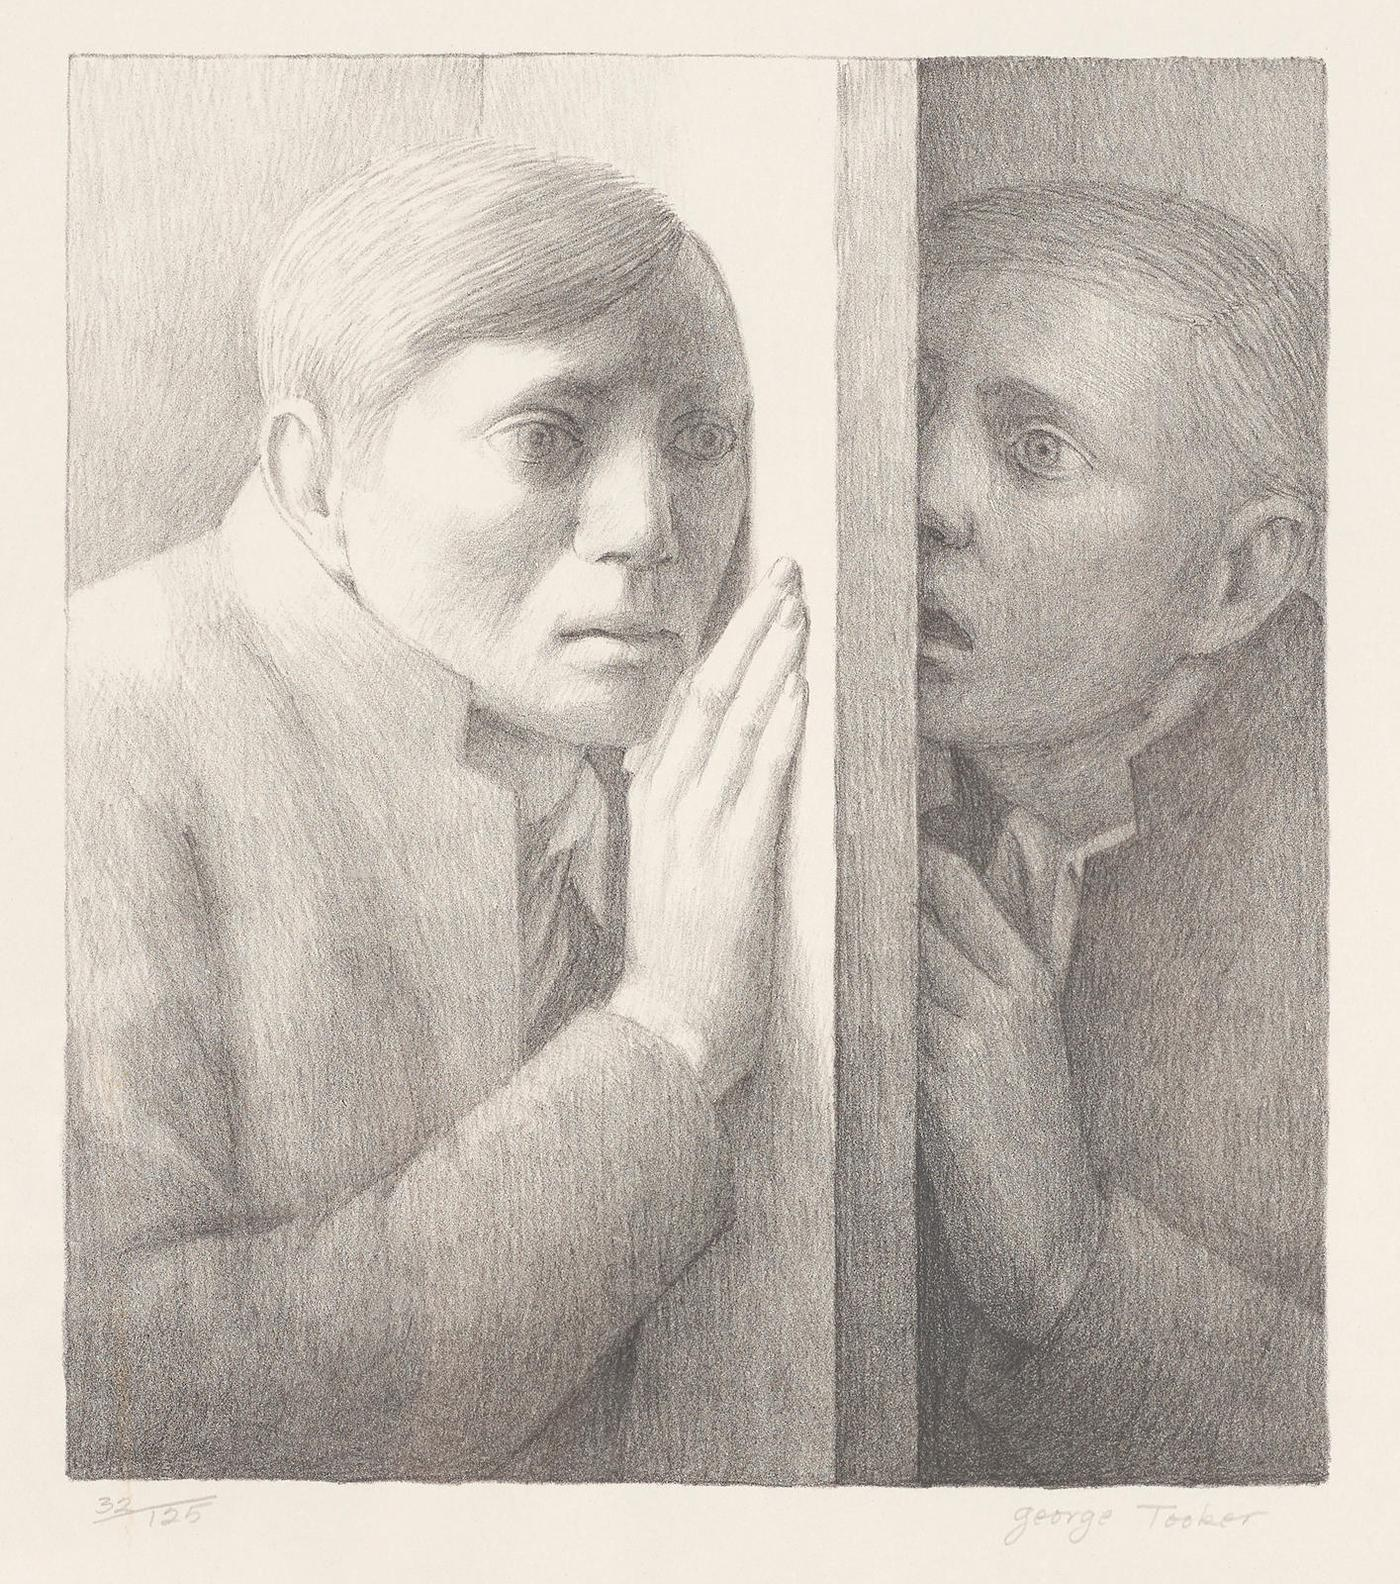 George Tooker-Voice; Lovers; Self-Portrait I 3-1984